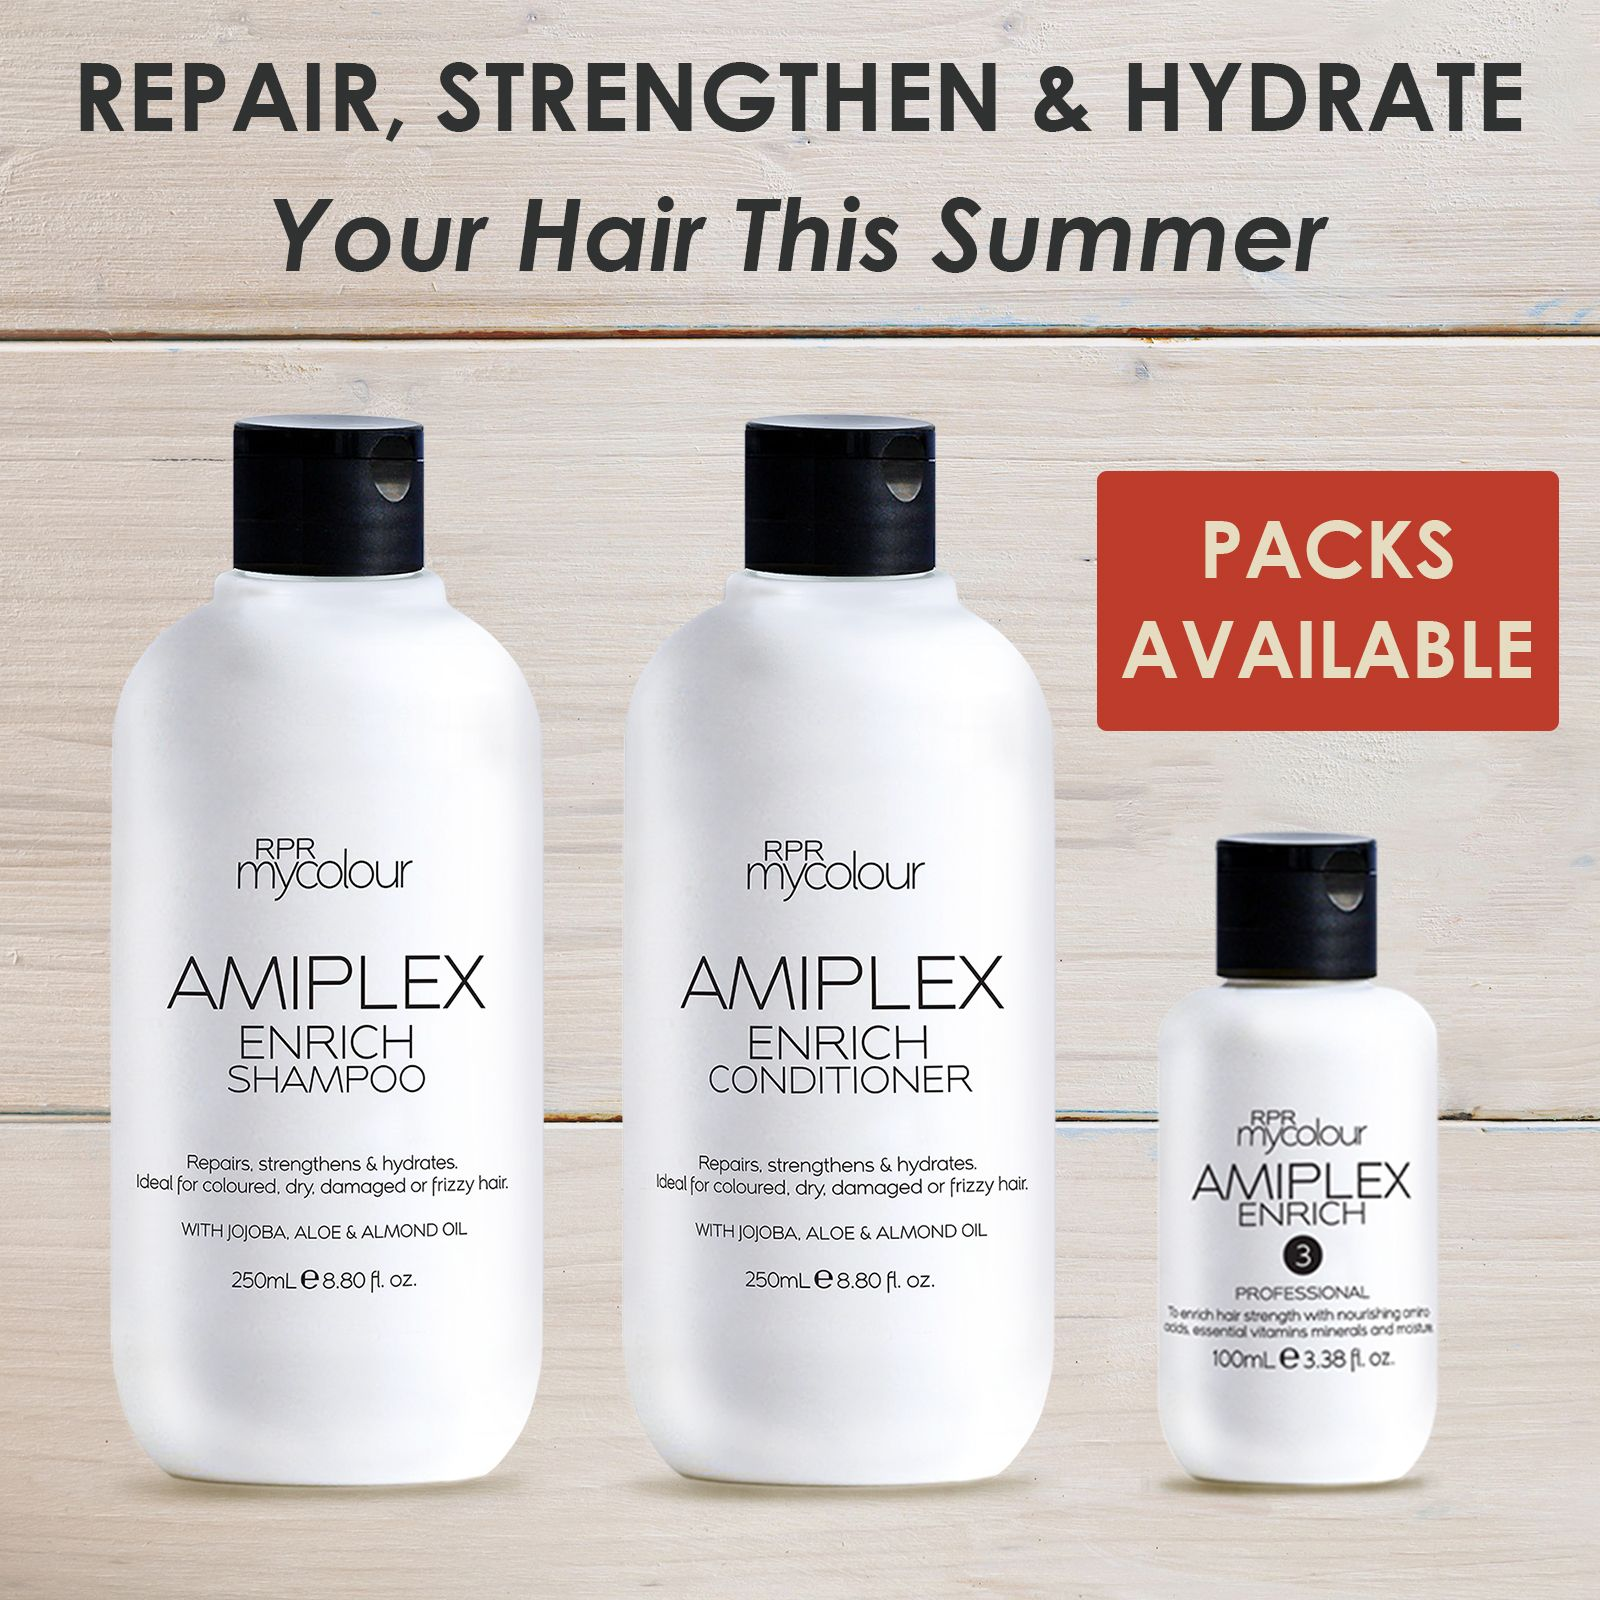 Repair, strengthen & hydrate your hair this summer with